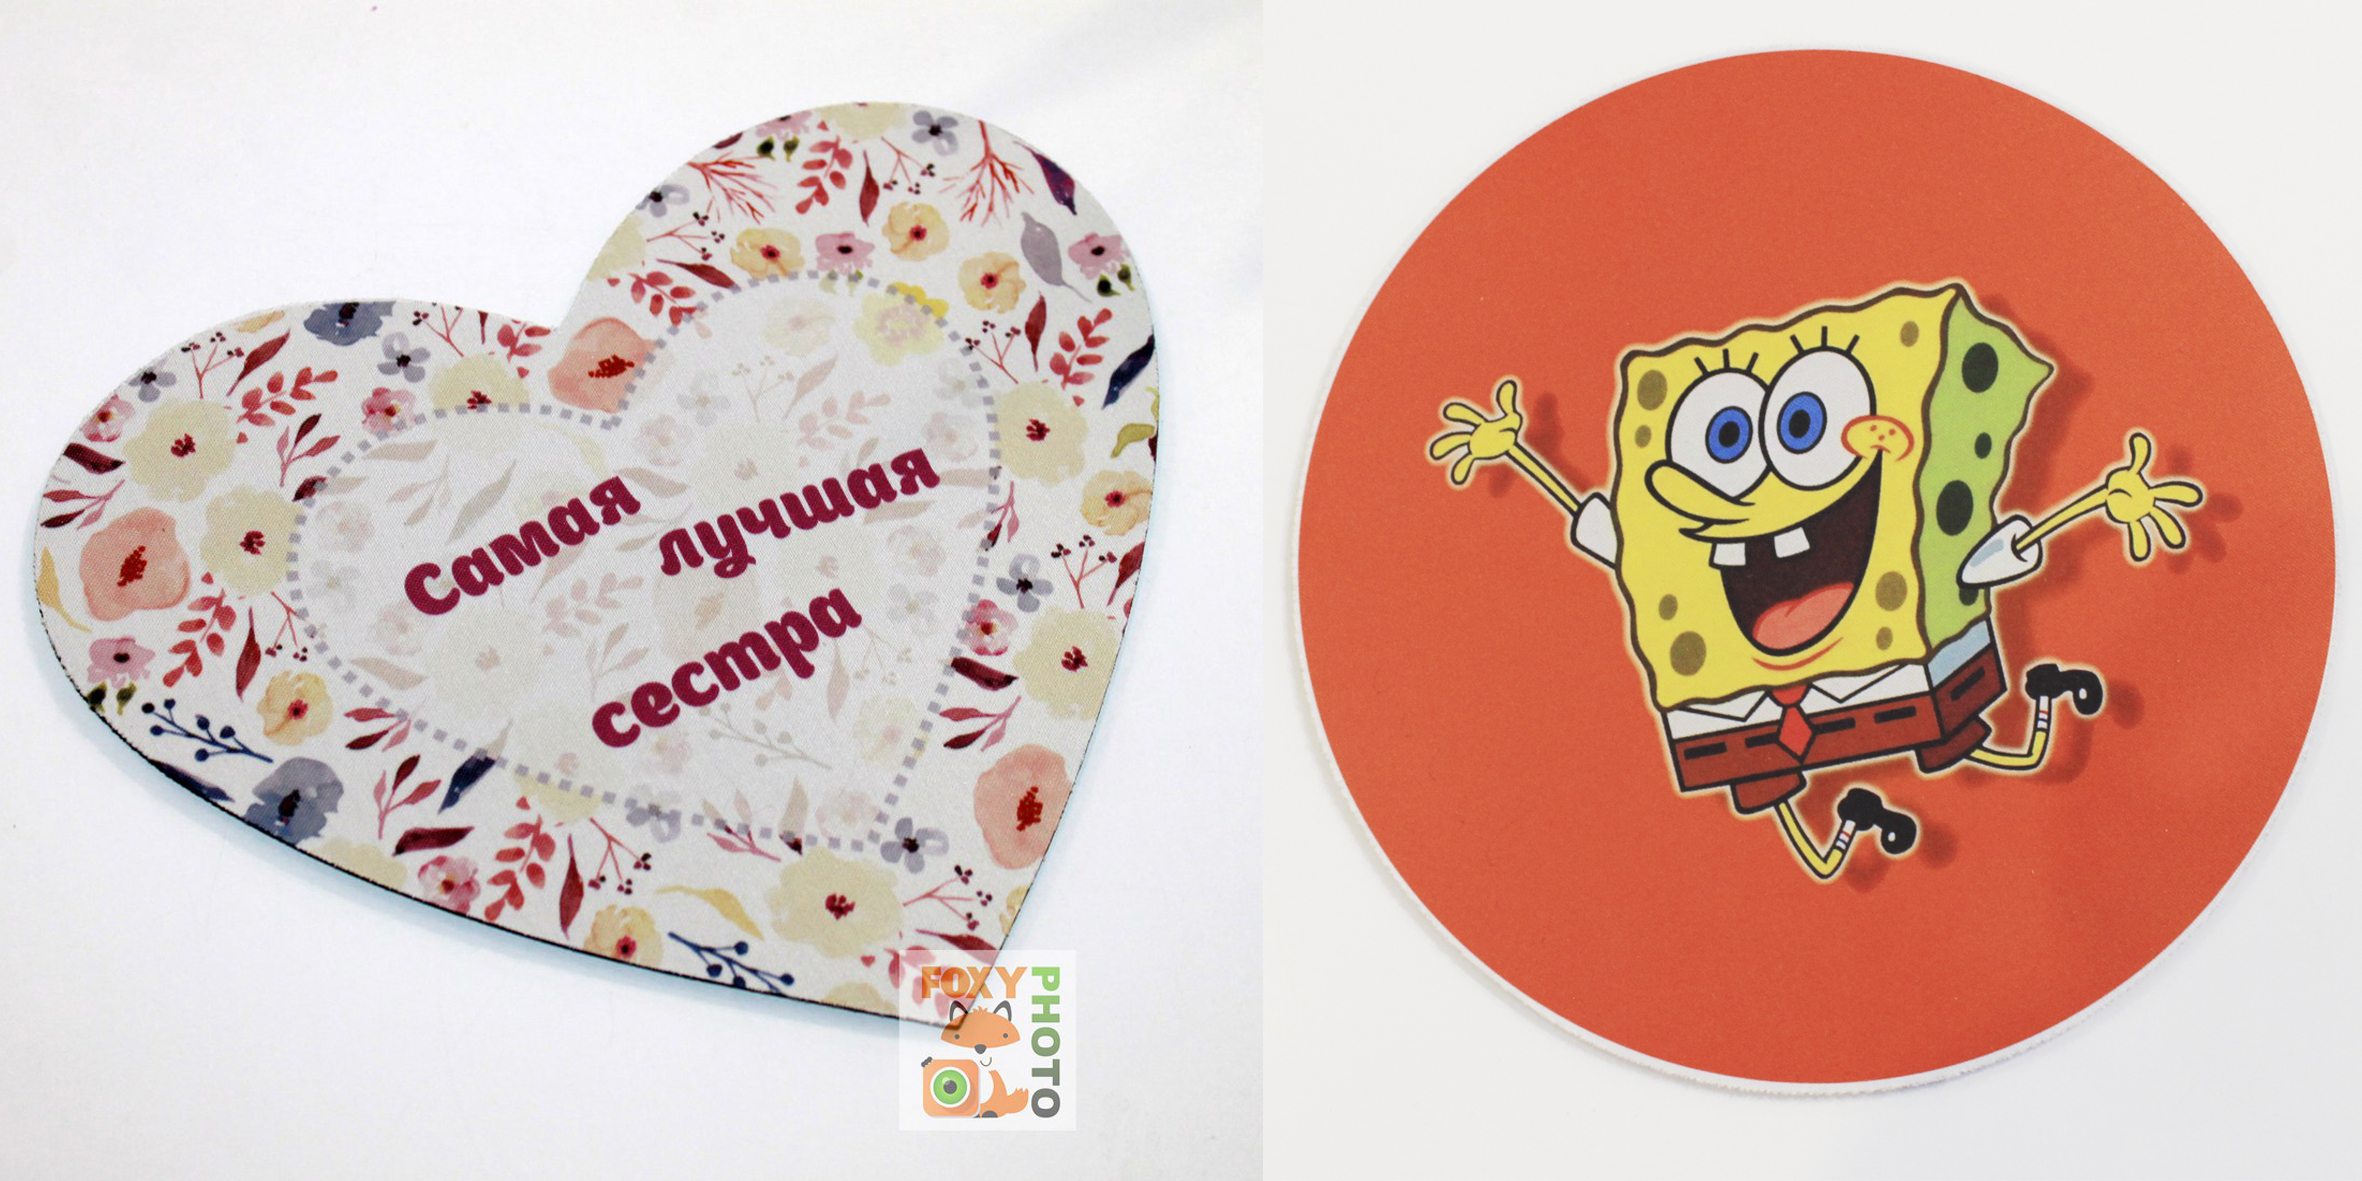 http://katyak9776.myshop.one/images/upload/коврики%20для%20мыши.jpg